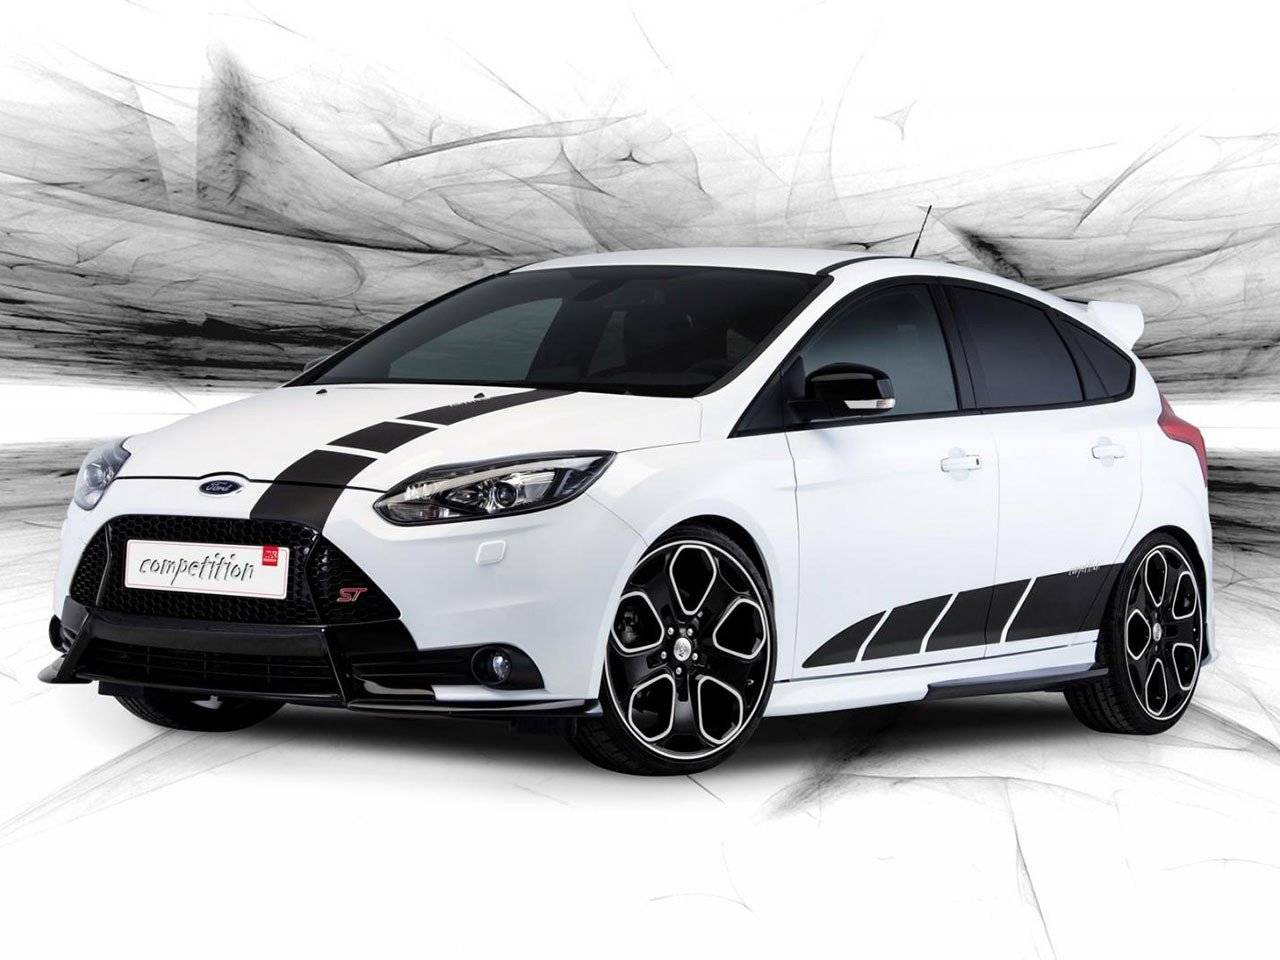 Ford Focus St Specificaties >> MS Design-stickers voor Ford Focus ST / Tuning & styling / Autowereld.com